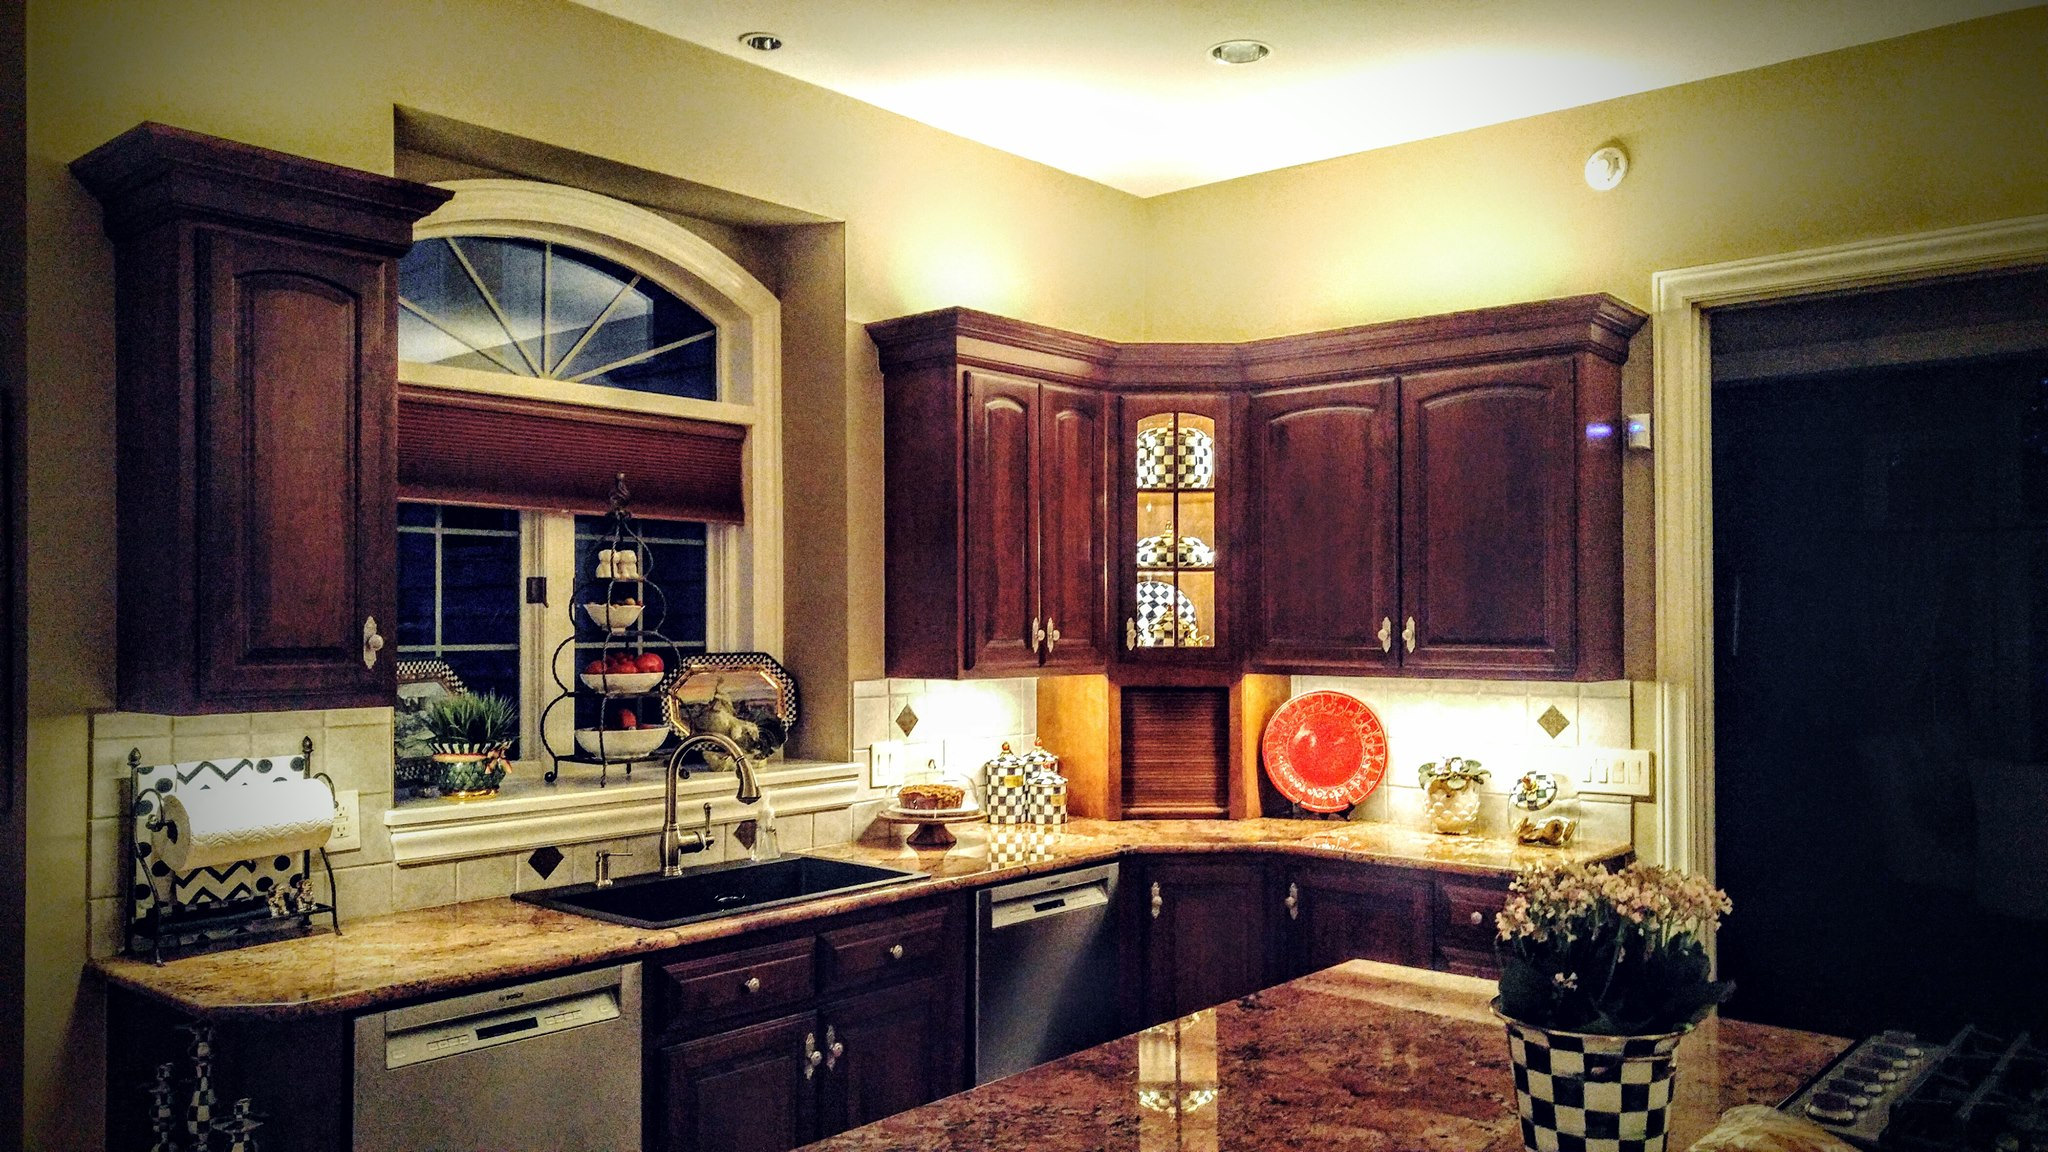 Kitchen Up Lighting And Under Cabinet Lighting Pilosi Electric